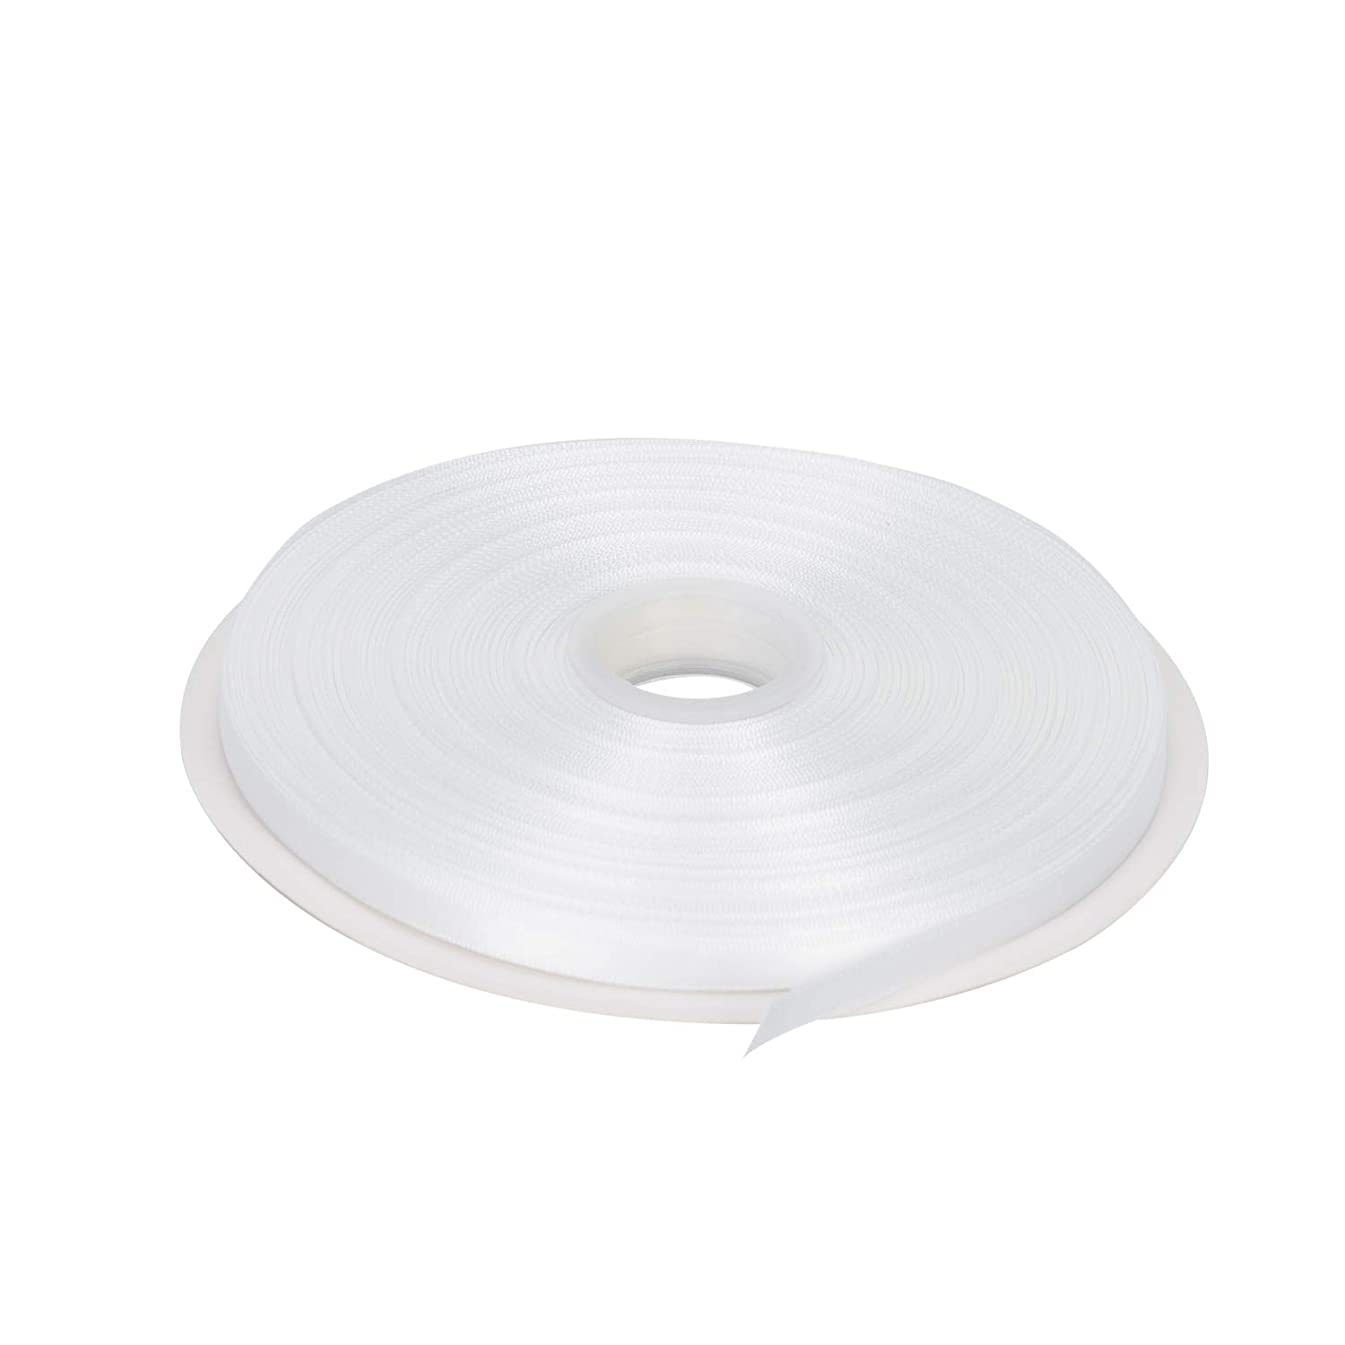 LaRibbons 100 Yards 1/4 inch Double Face Satin Ribbon for Craft, Gift Wrapping, Hair Bow, Wedding Deco - 029 White